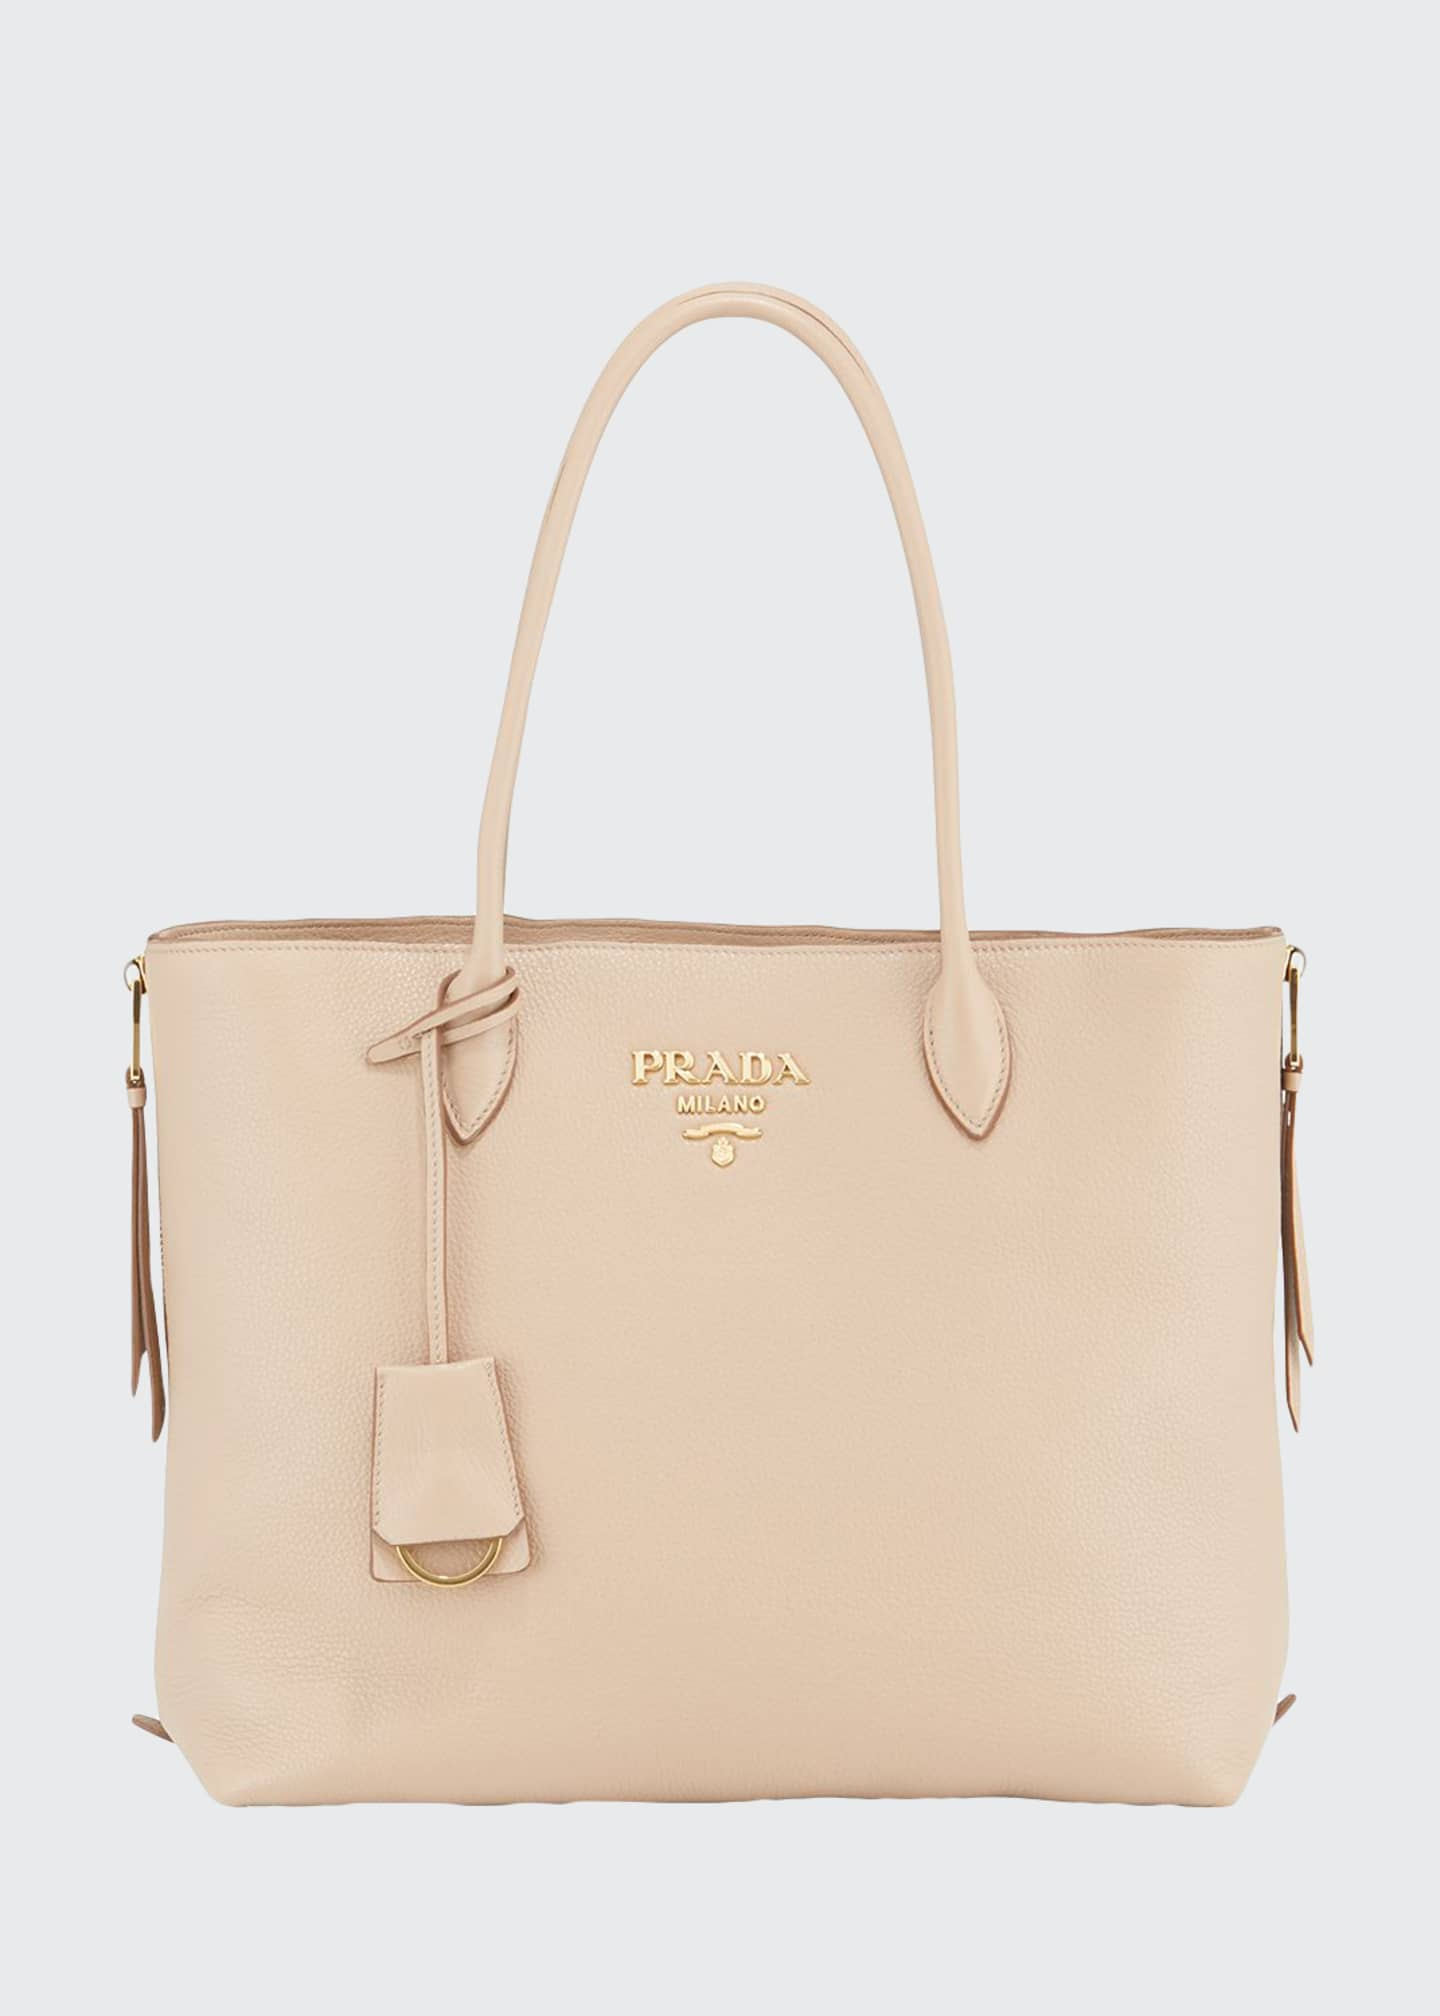 Prada Daino Shopper with Side Zips